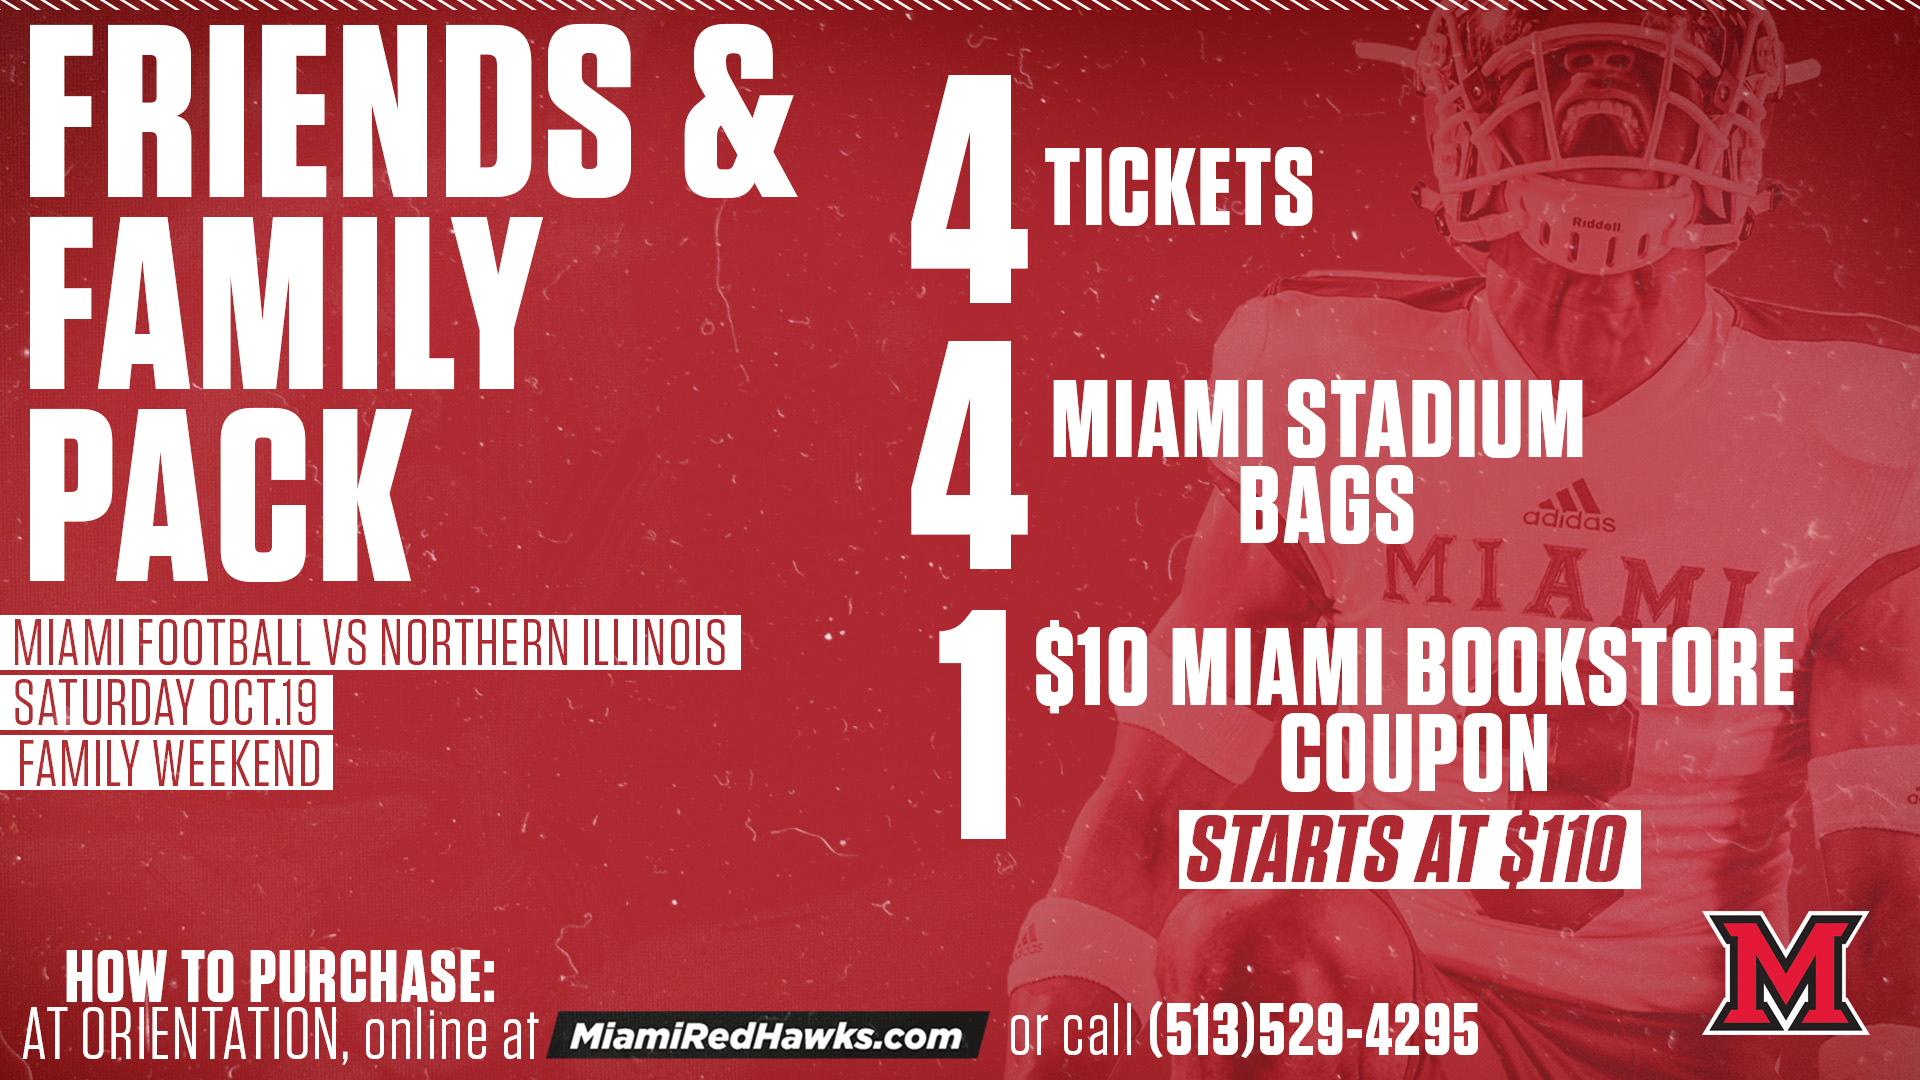 Friends and Family Pack for Football v. Northern Illinois. 4 tickets, 4 stadium bags, 1 Miami bookstore coupon. Starts at $110